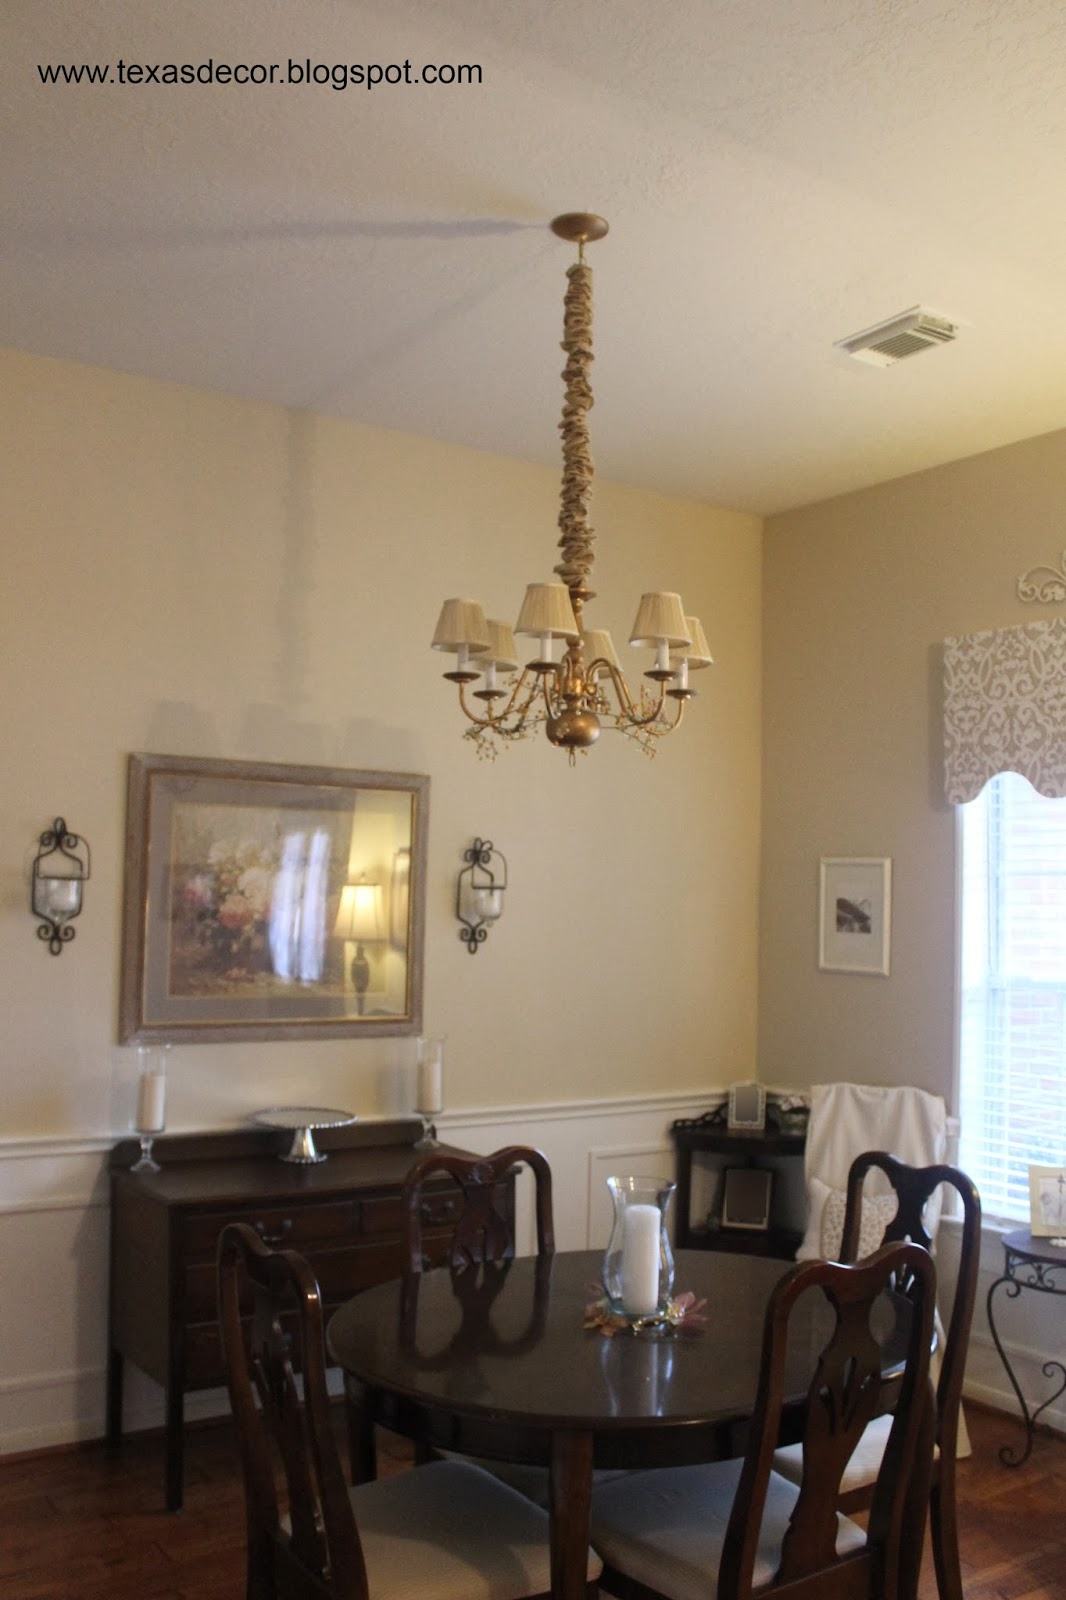 Texas Decor Adding A Medallion To The Dining Room Chandelier